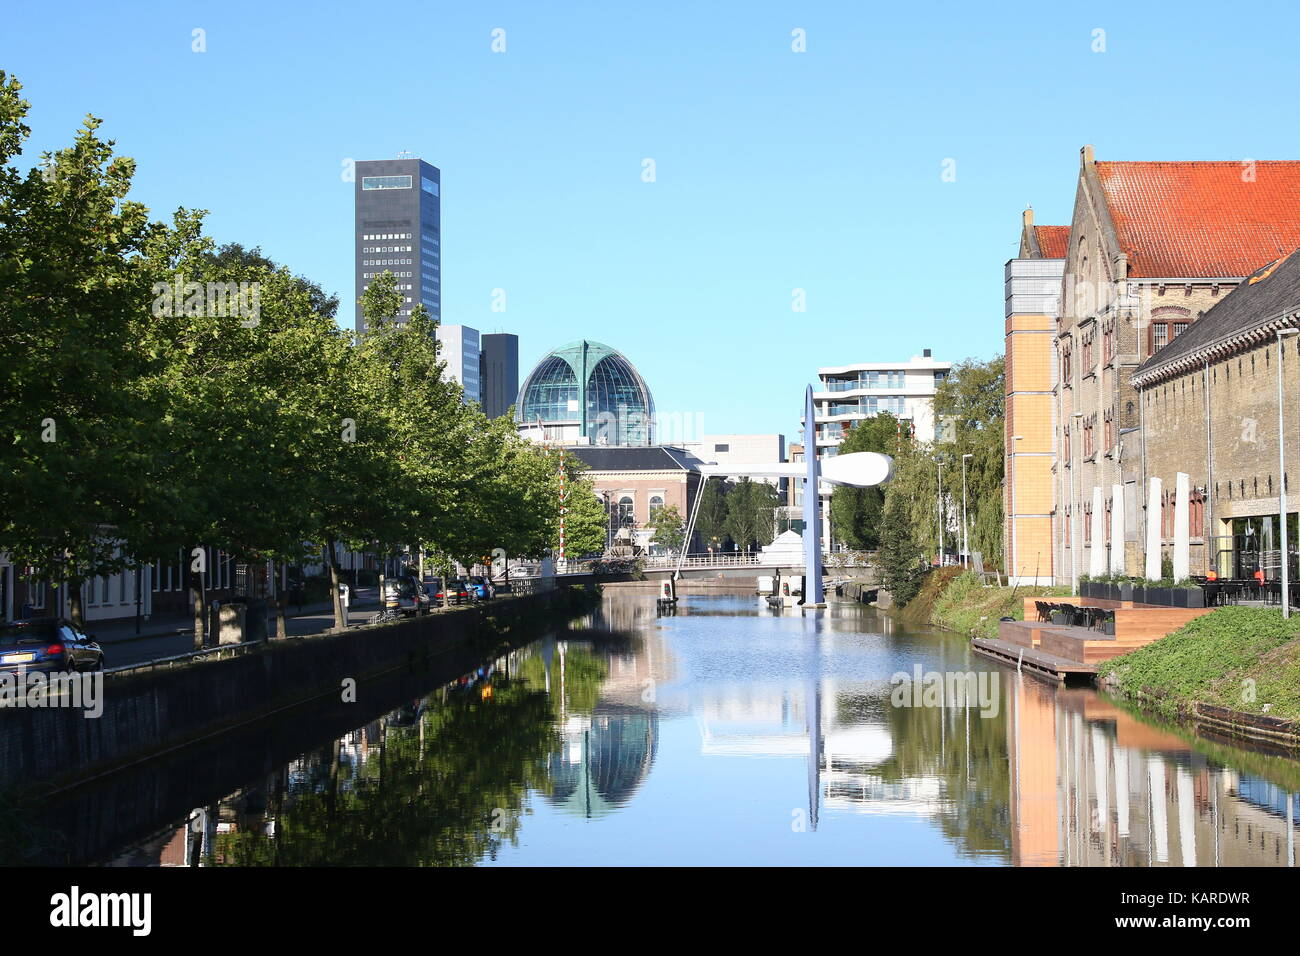 Skyline of Leeuwarden,  The Netherlands with Achmeatoren skyscraper and on right  Blokhuispoort, former prison complex. - Stock Image